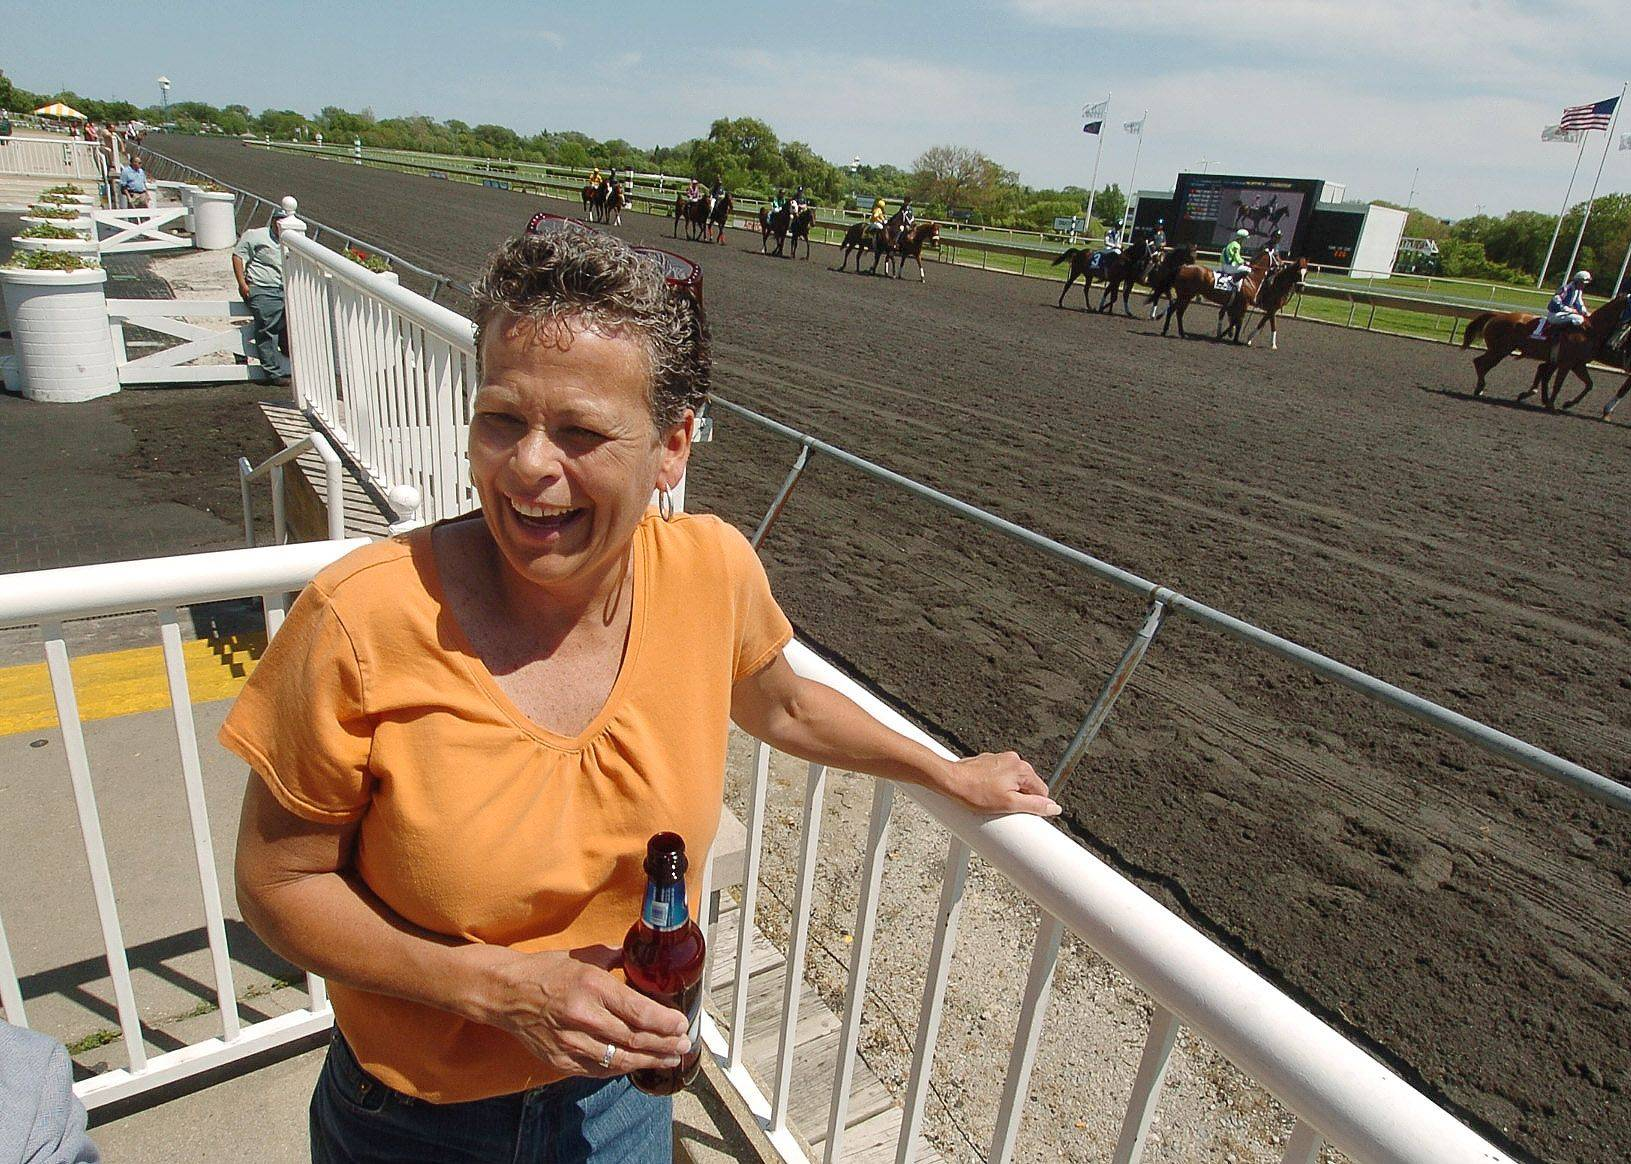 Slot machines inside a casino can't compete with the joy that Joy Suerth of Chicago gets from the sunshine, horses and camaraderie of Arlington Park.